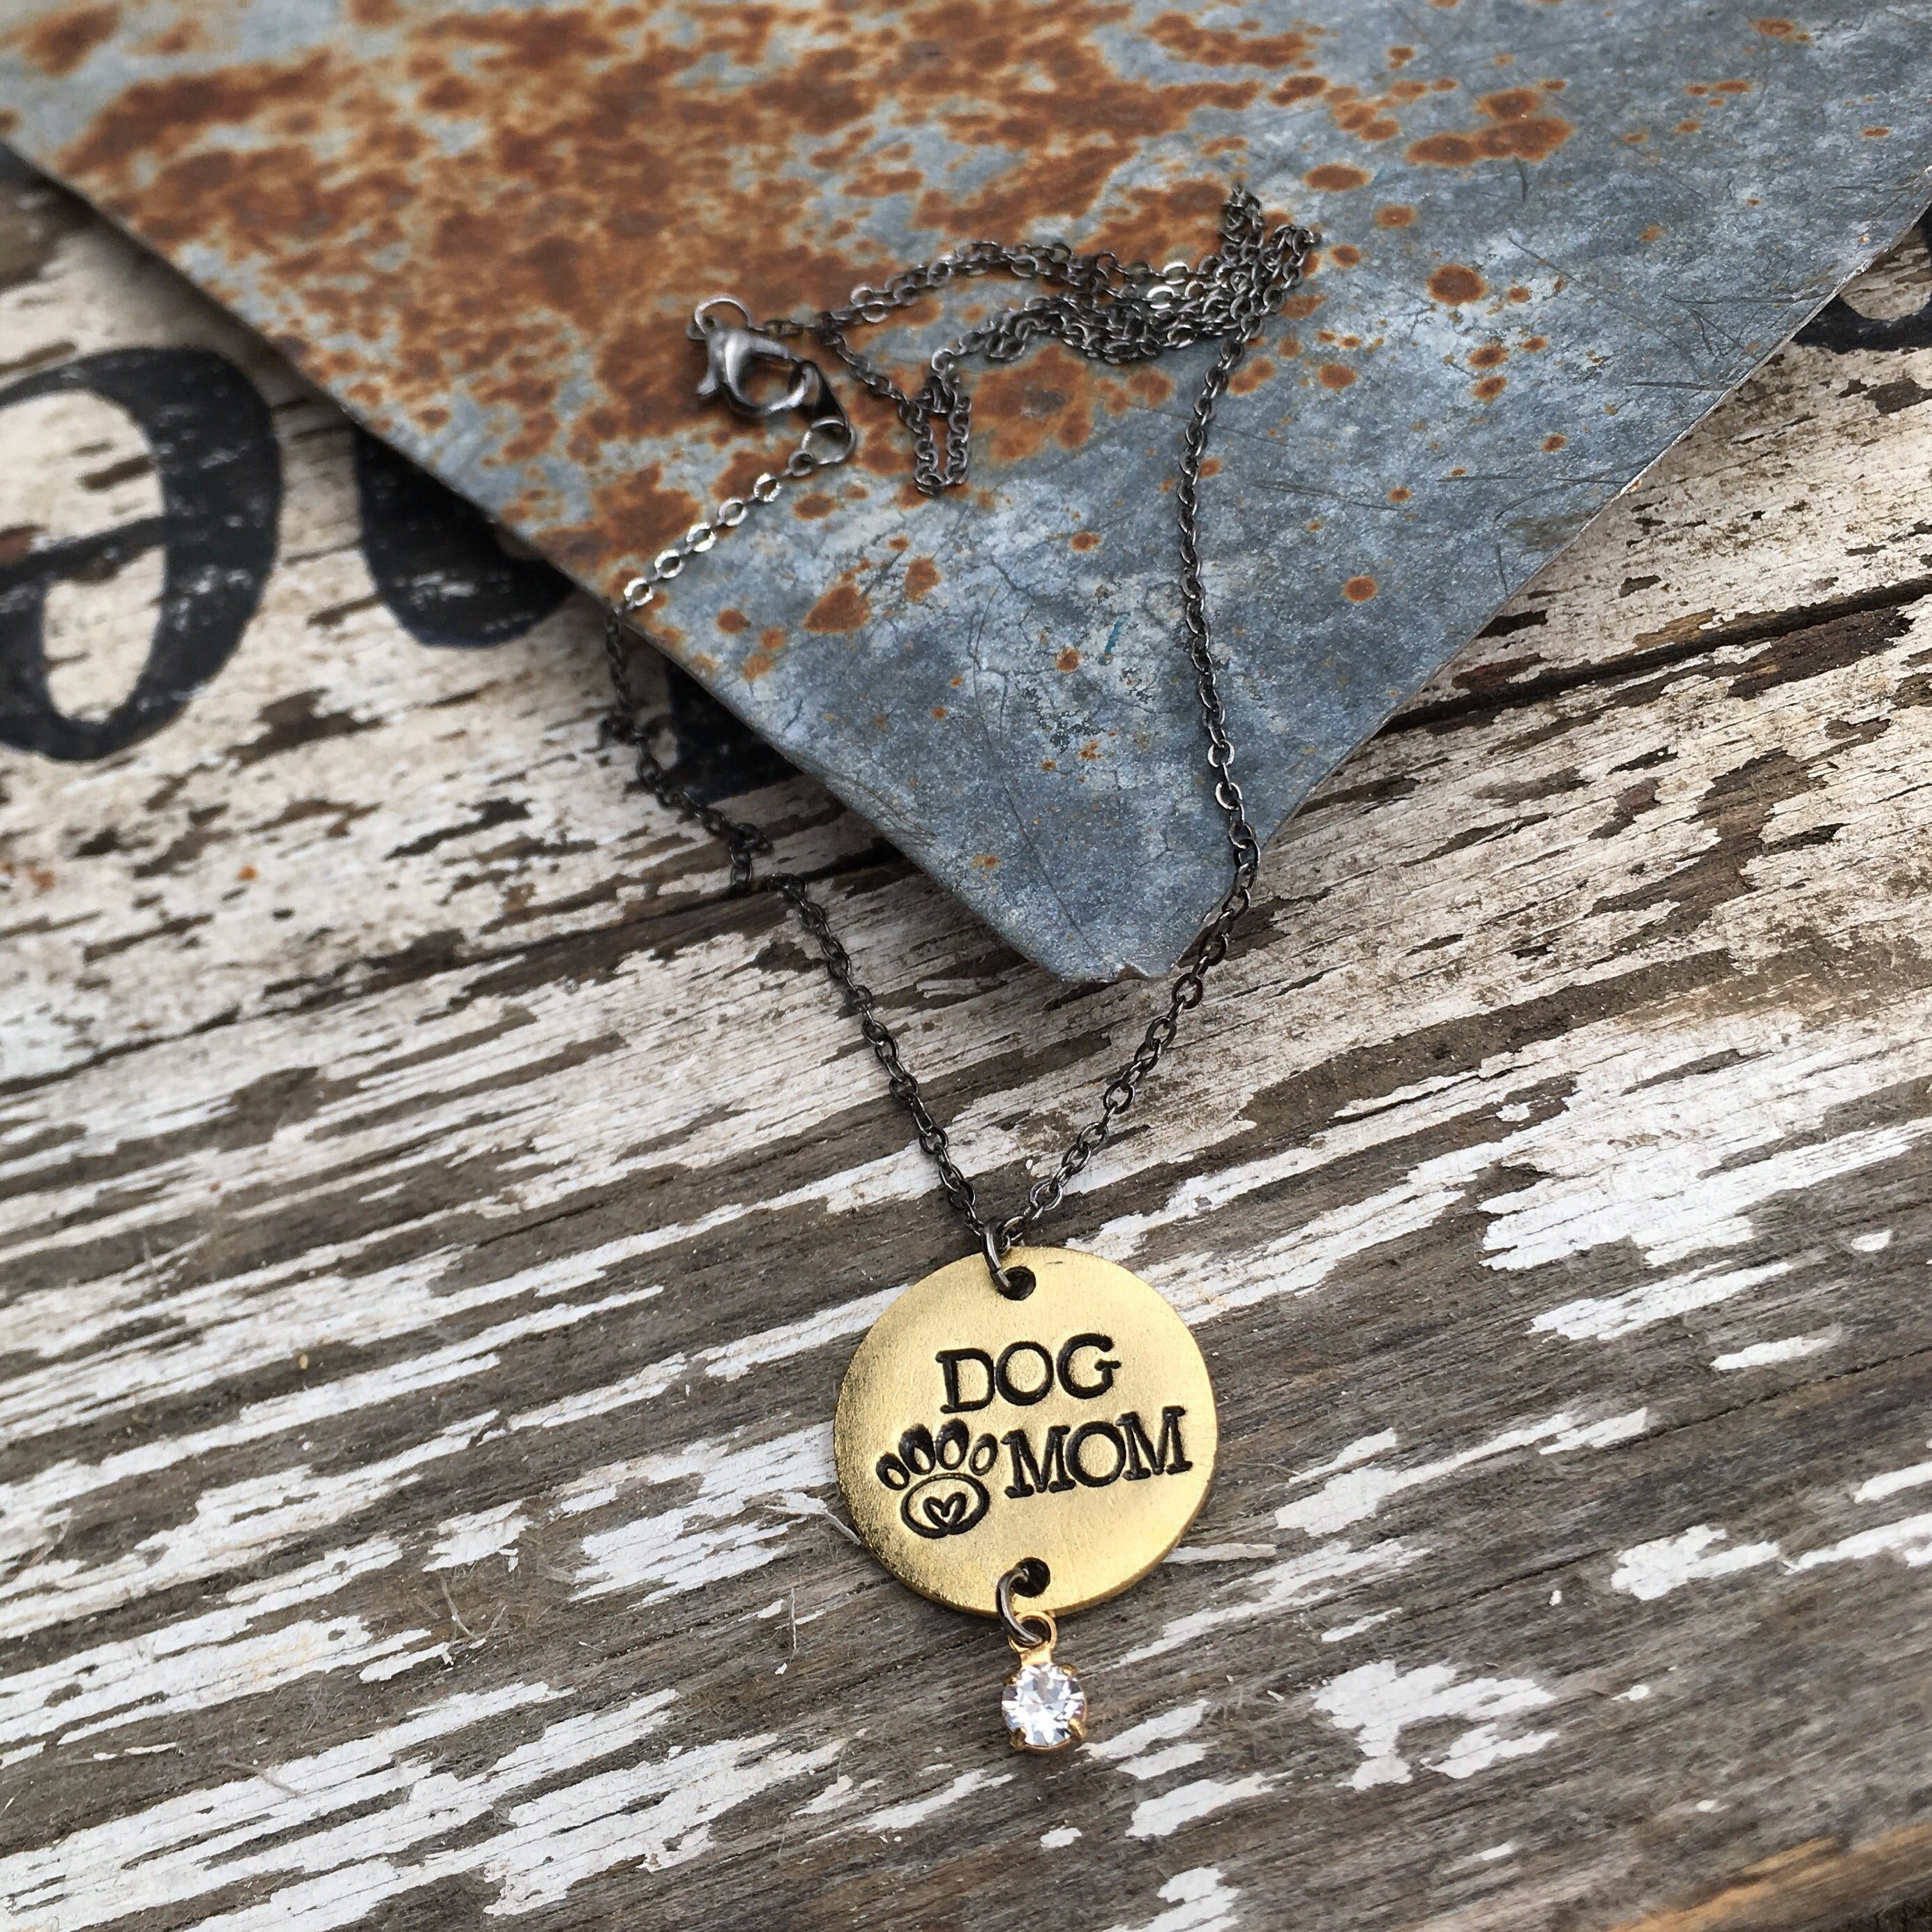 Dog Mom Hand Stamped Necklace - Animal Lover Jewelry